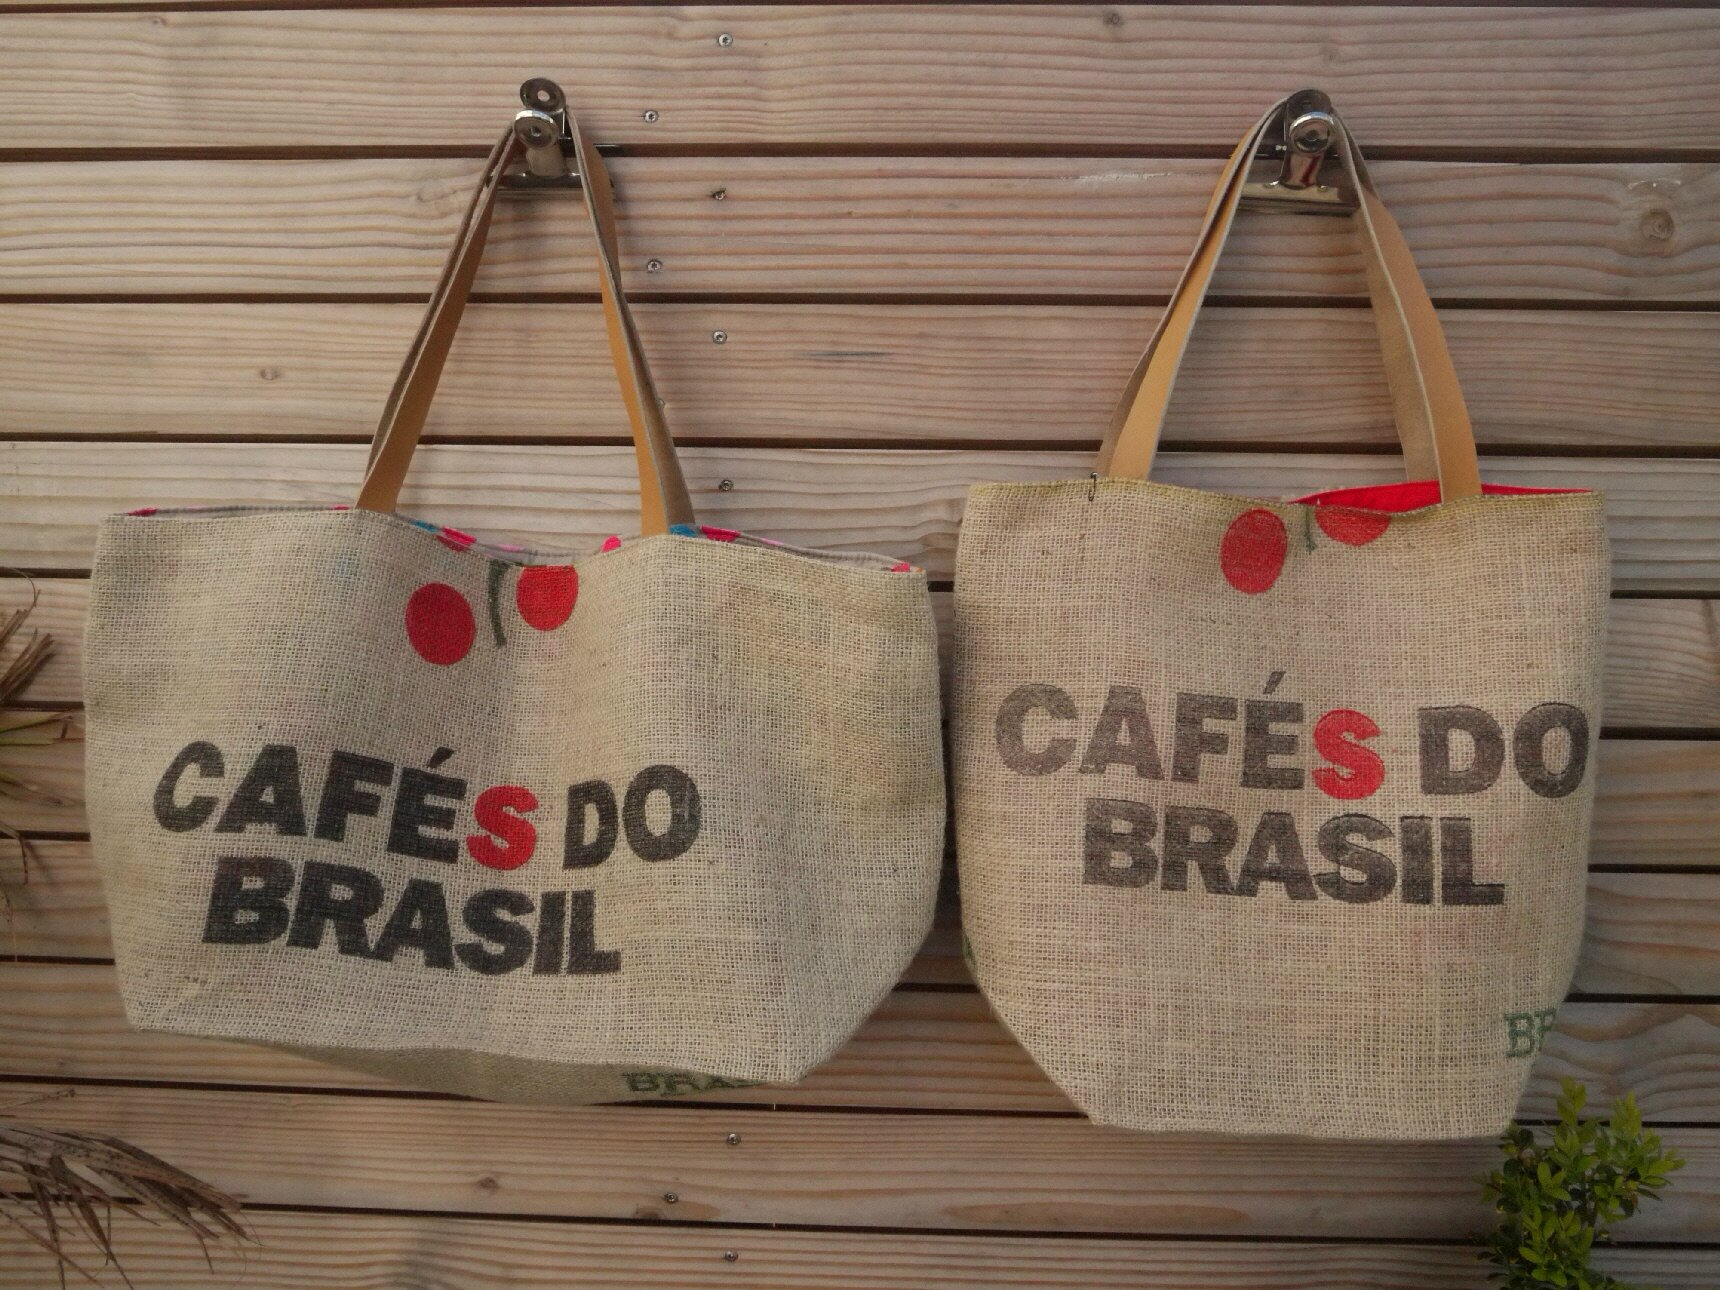 sac de plage r alis dans une toile de jute de sac caf recycl caf s do brasil mod le. Black Bedroom Furniture Sets. Home Design Ideas